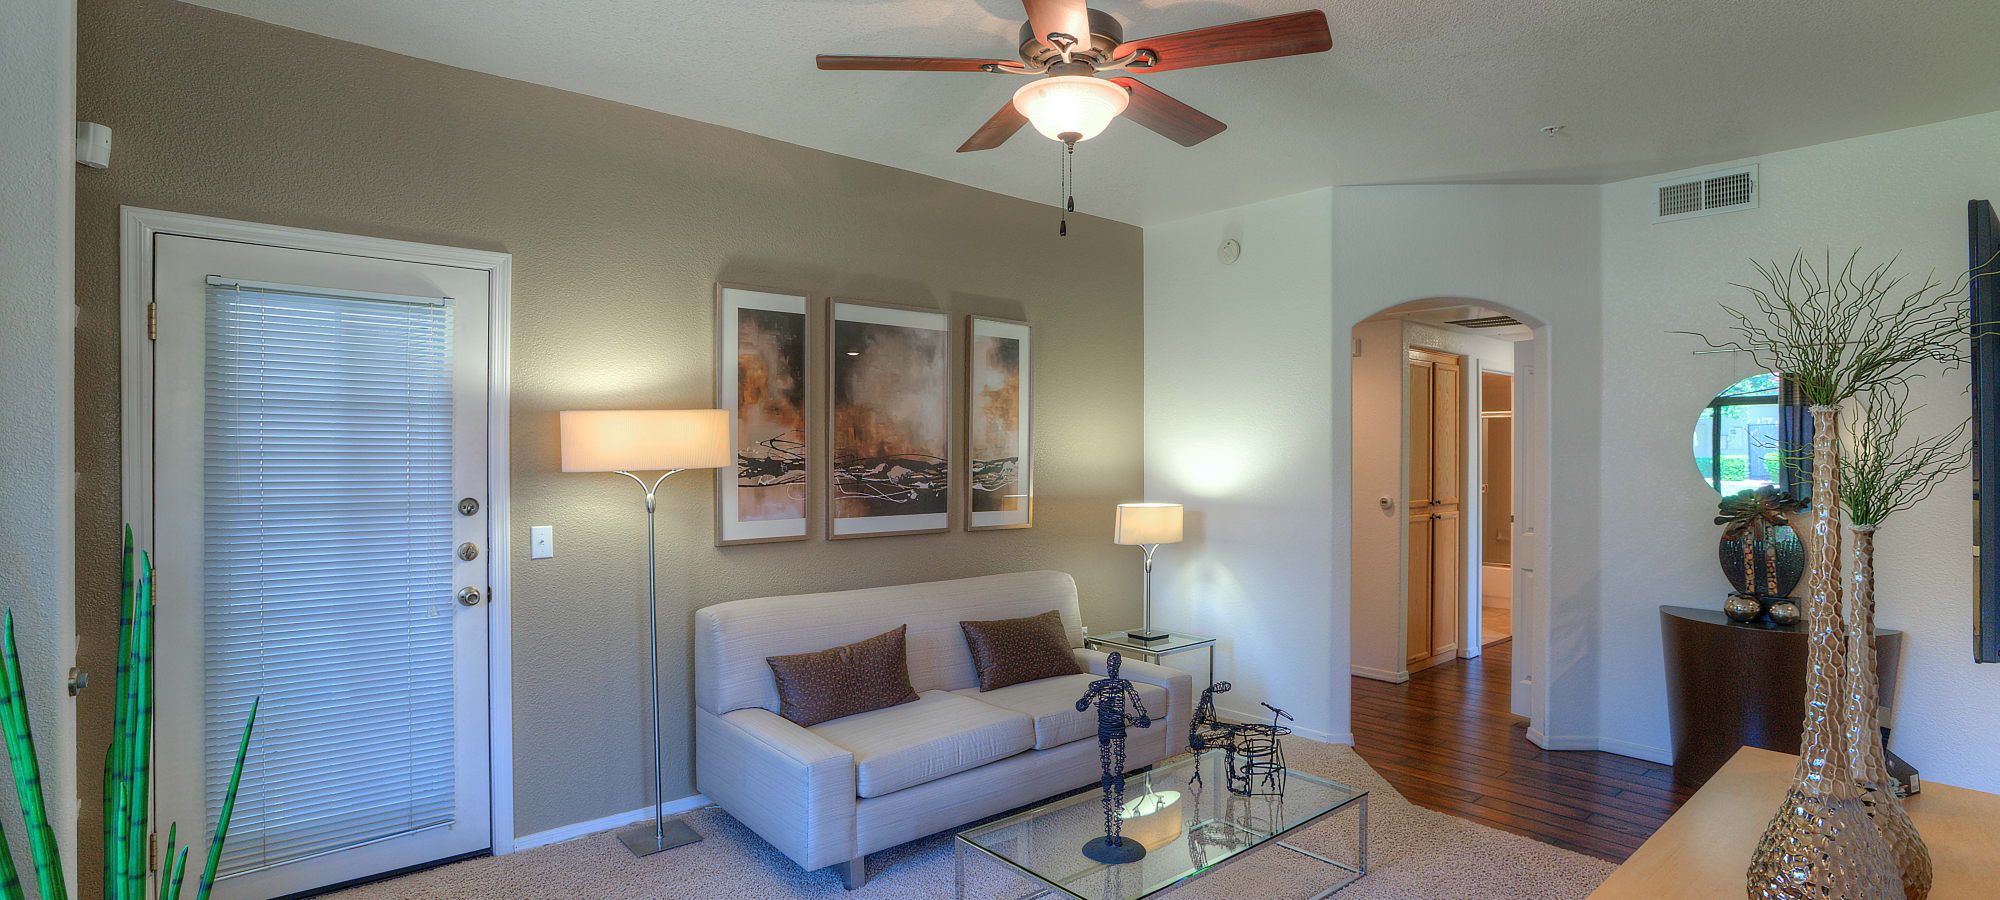 Large living room with a ceiling fan at San Cervantes in Chandler, Arizona